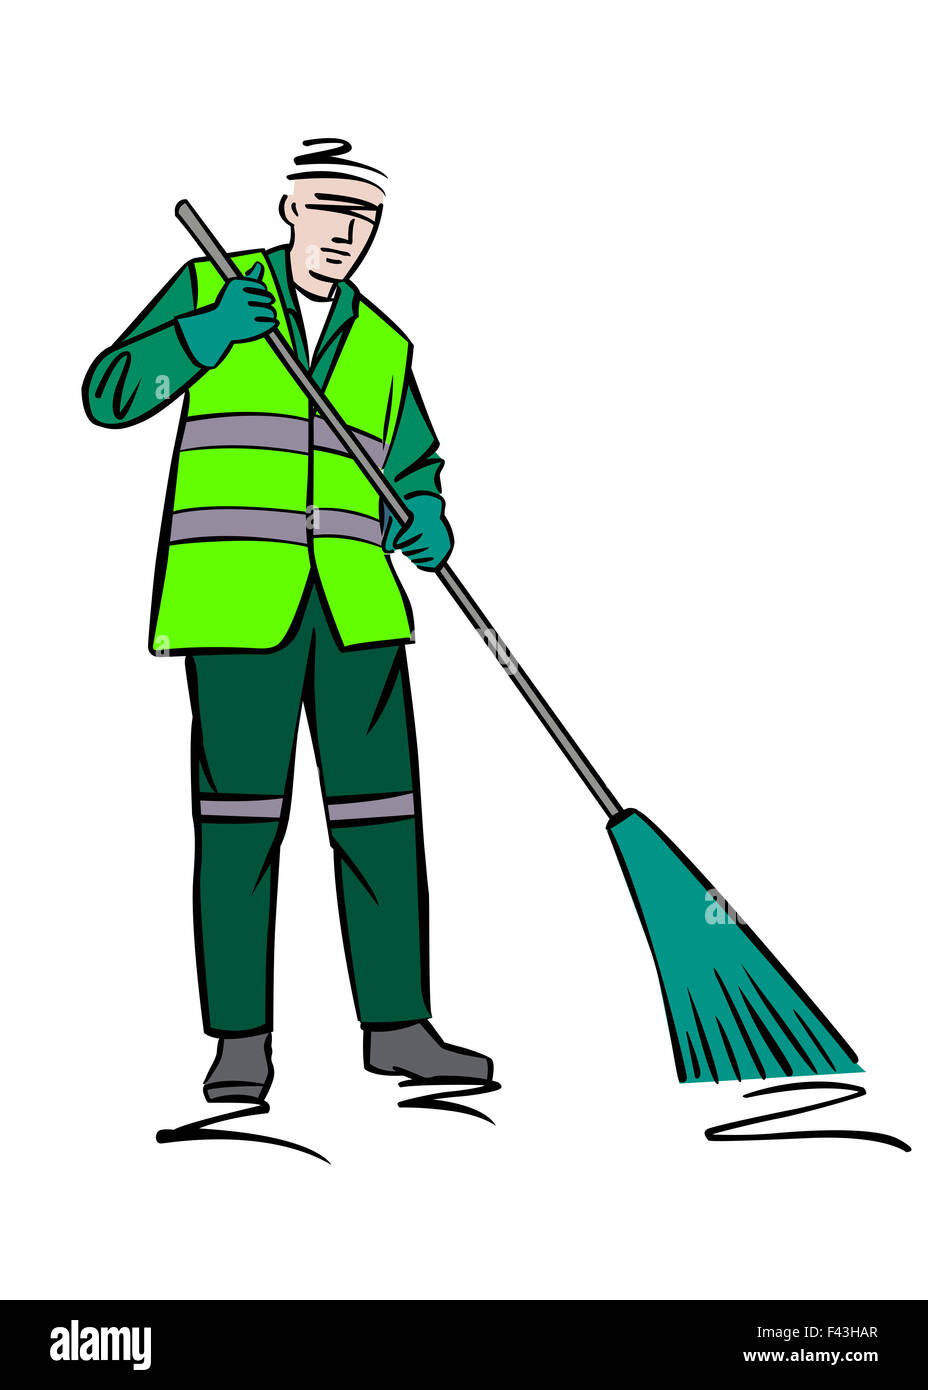 Illustration of a street sweeper - Stock Image